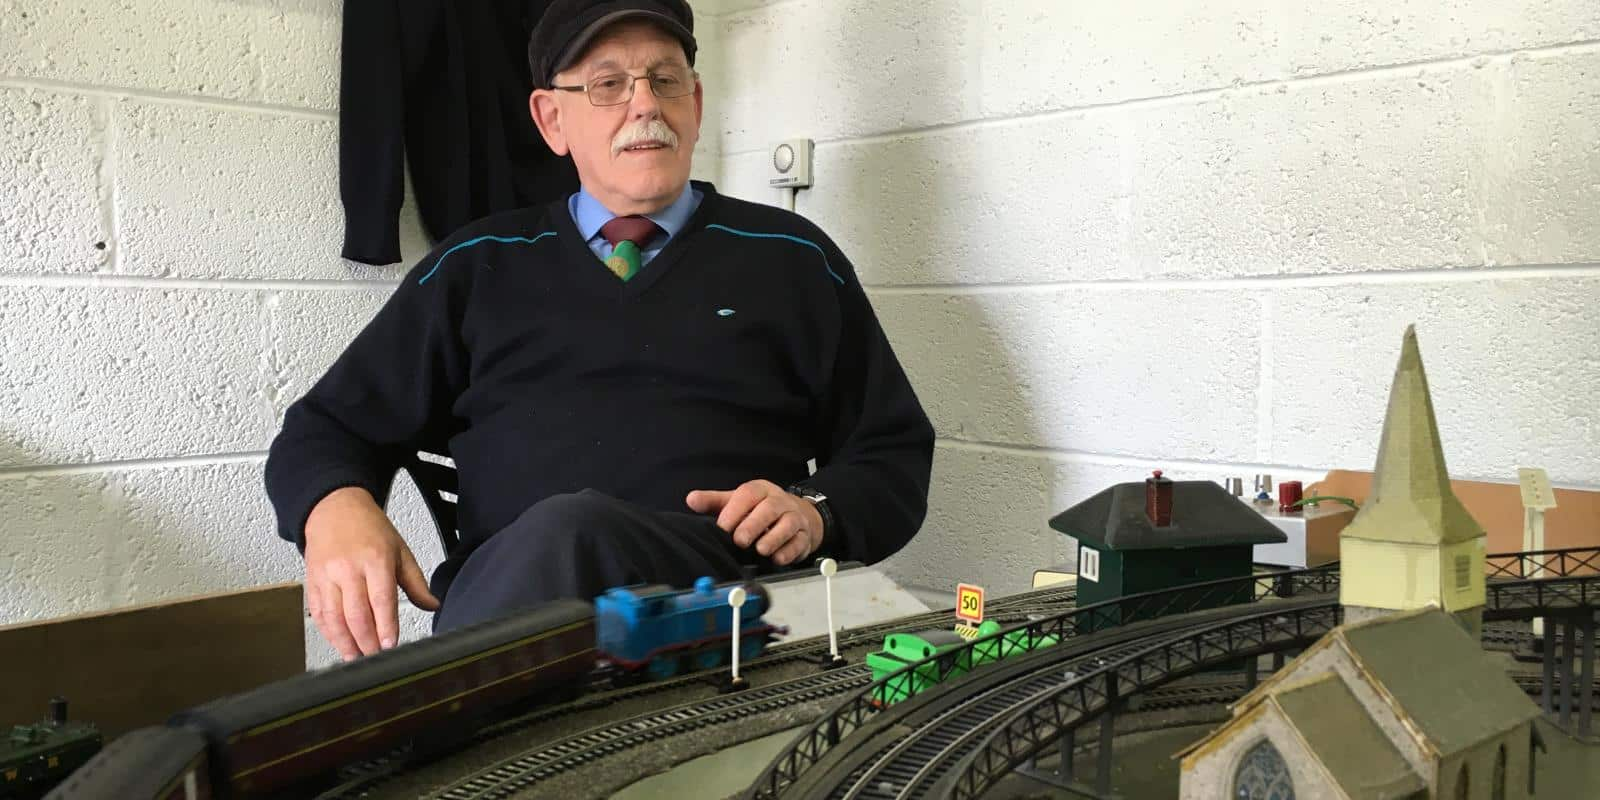 Dessie in control as Thomas races past on the model railway